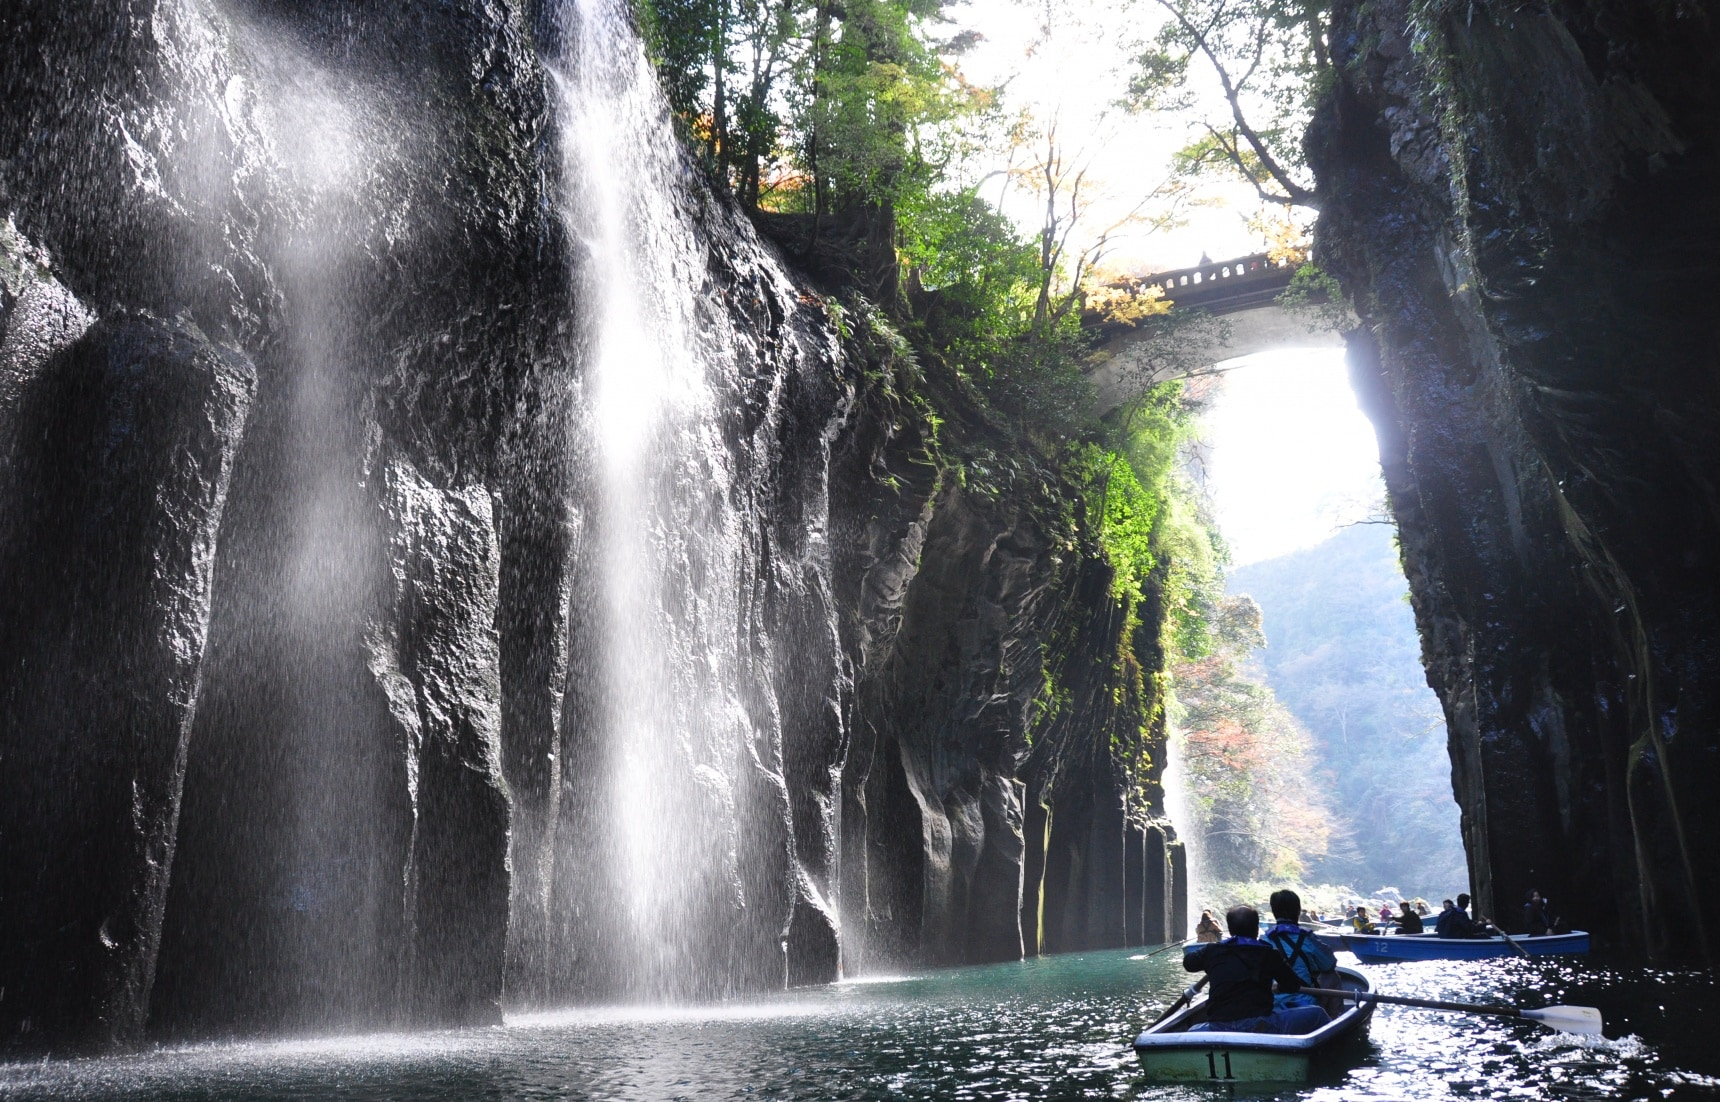 Takachiho: Climb into the Land of the Gods